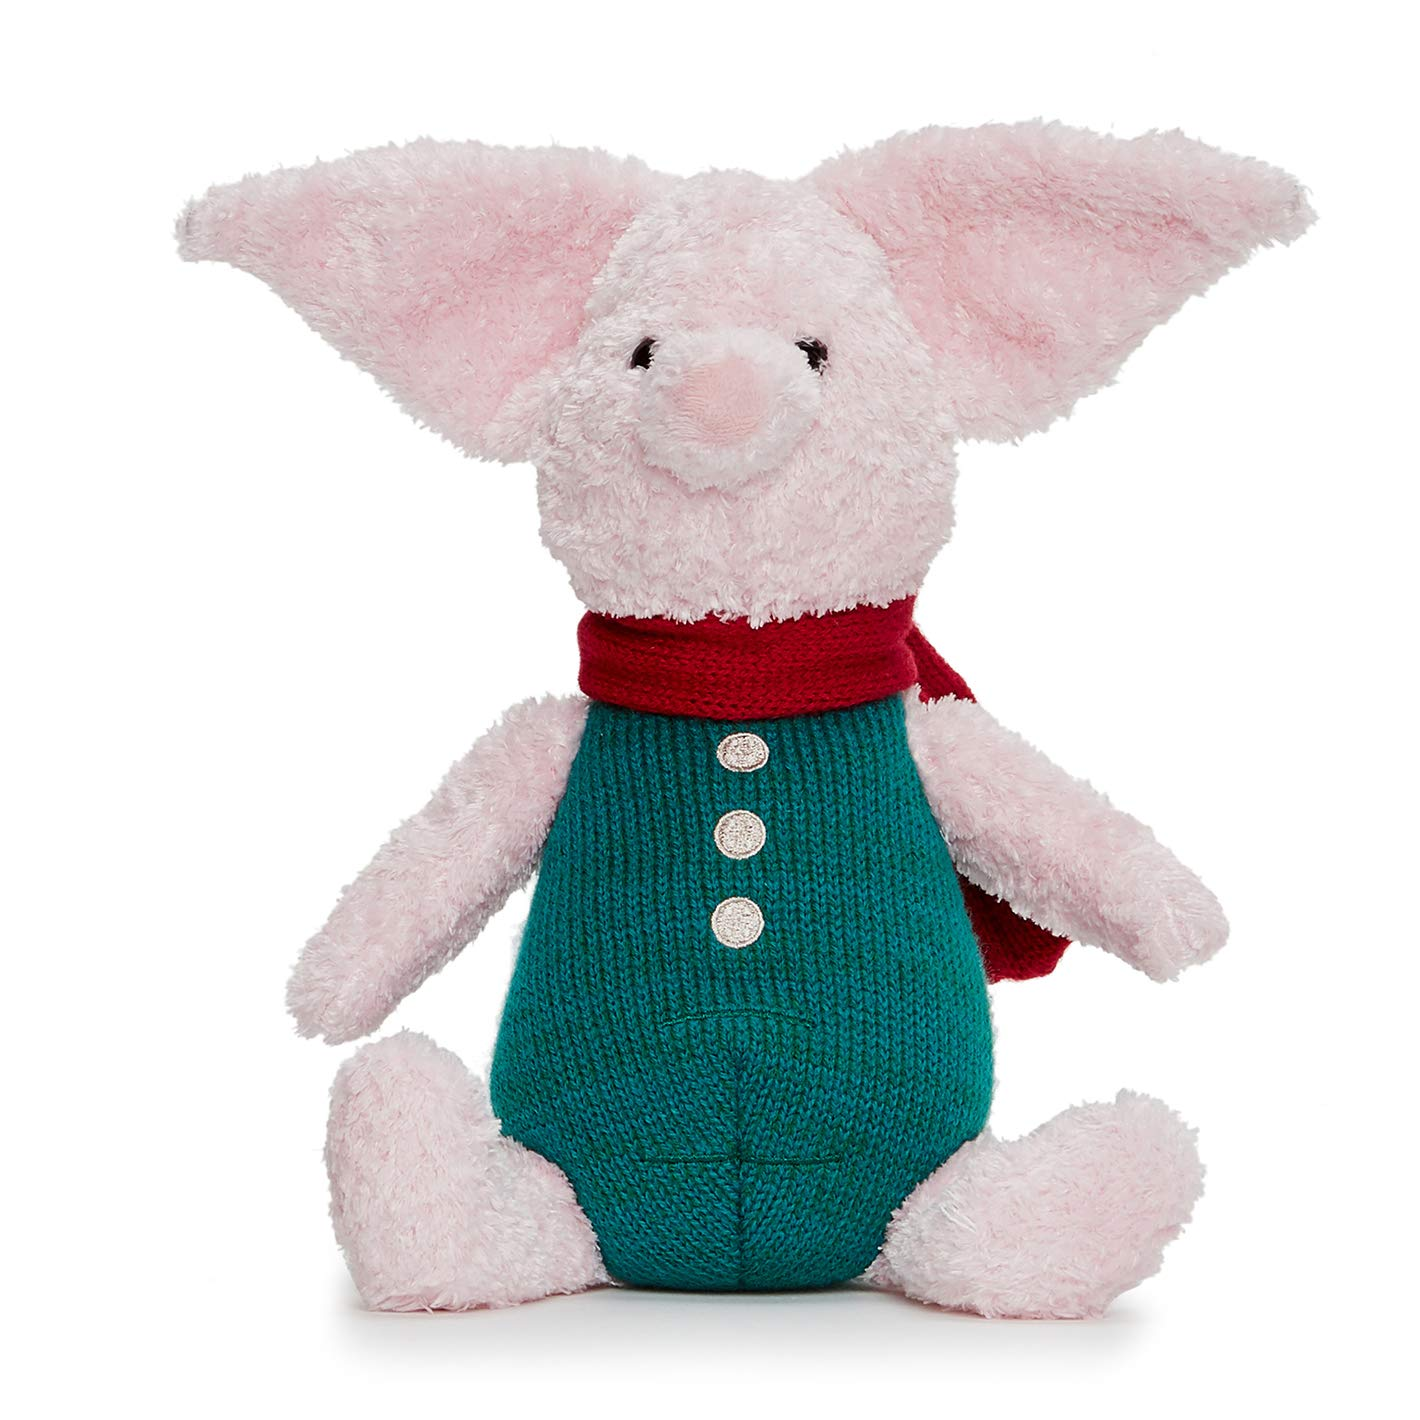 Disney Christopher Robin Collection Winnie The Pooh Piglet Soft Toy - 25cm by Posh Paws